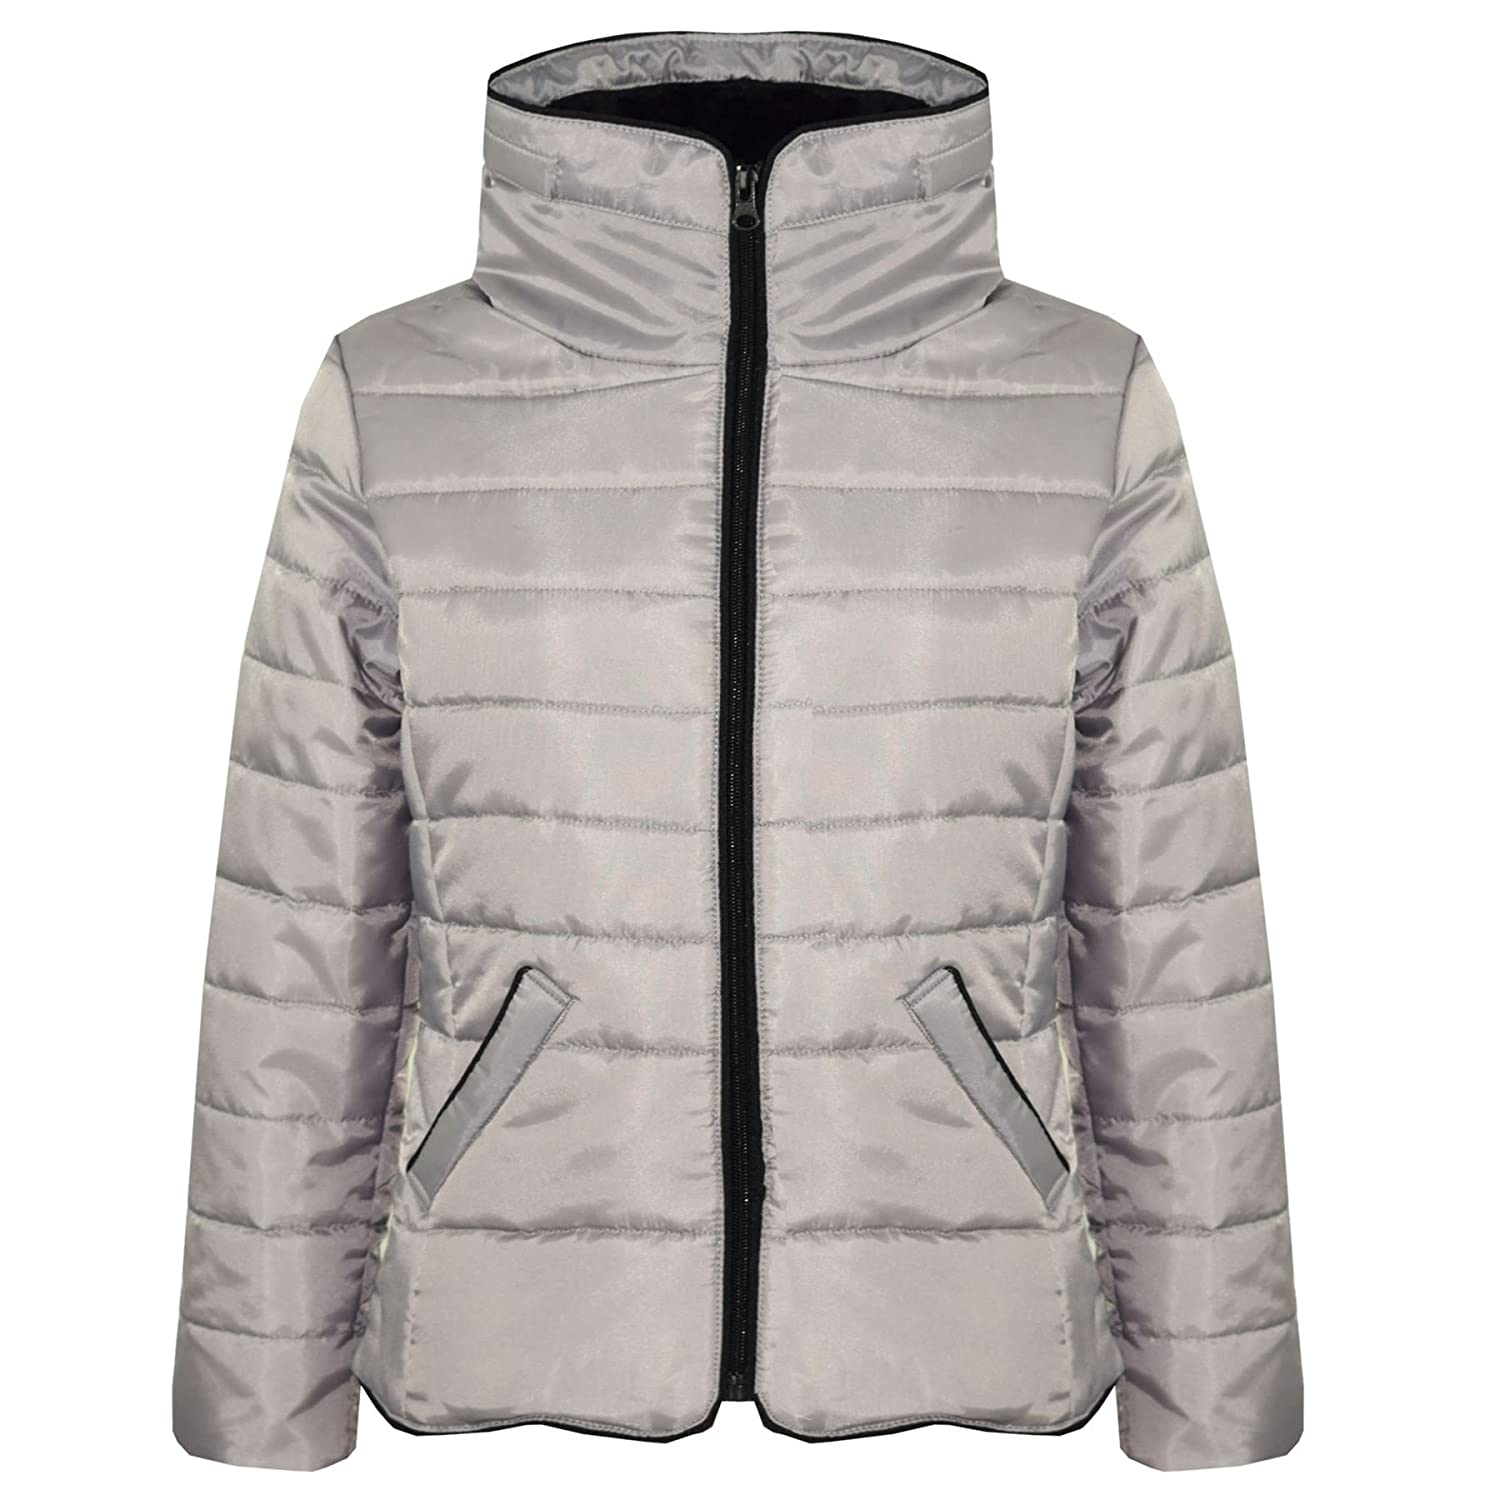 A2Z 4 Kids/® Girls Jacket Kids Stylish Padded Puffer Bubble Silver Faux Fur Collar Quilted Warm Thick Coat Jackets Age 5 6 7 8 9 10 11 12 13 Years